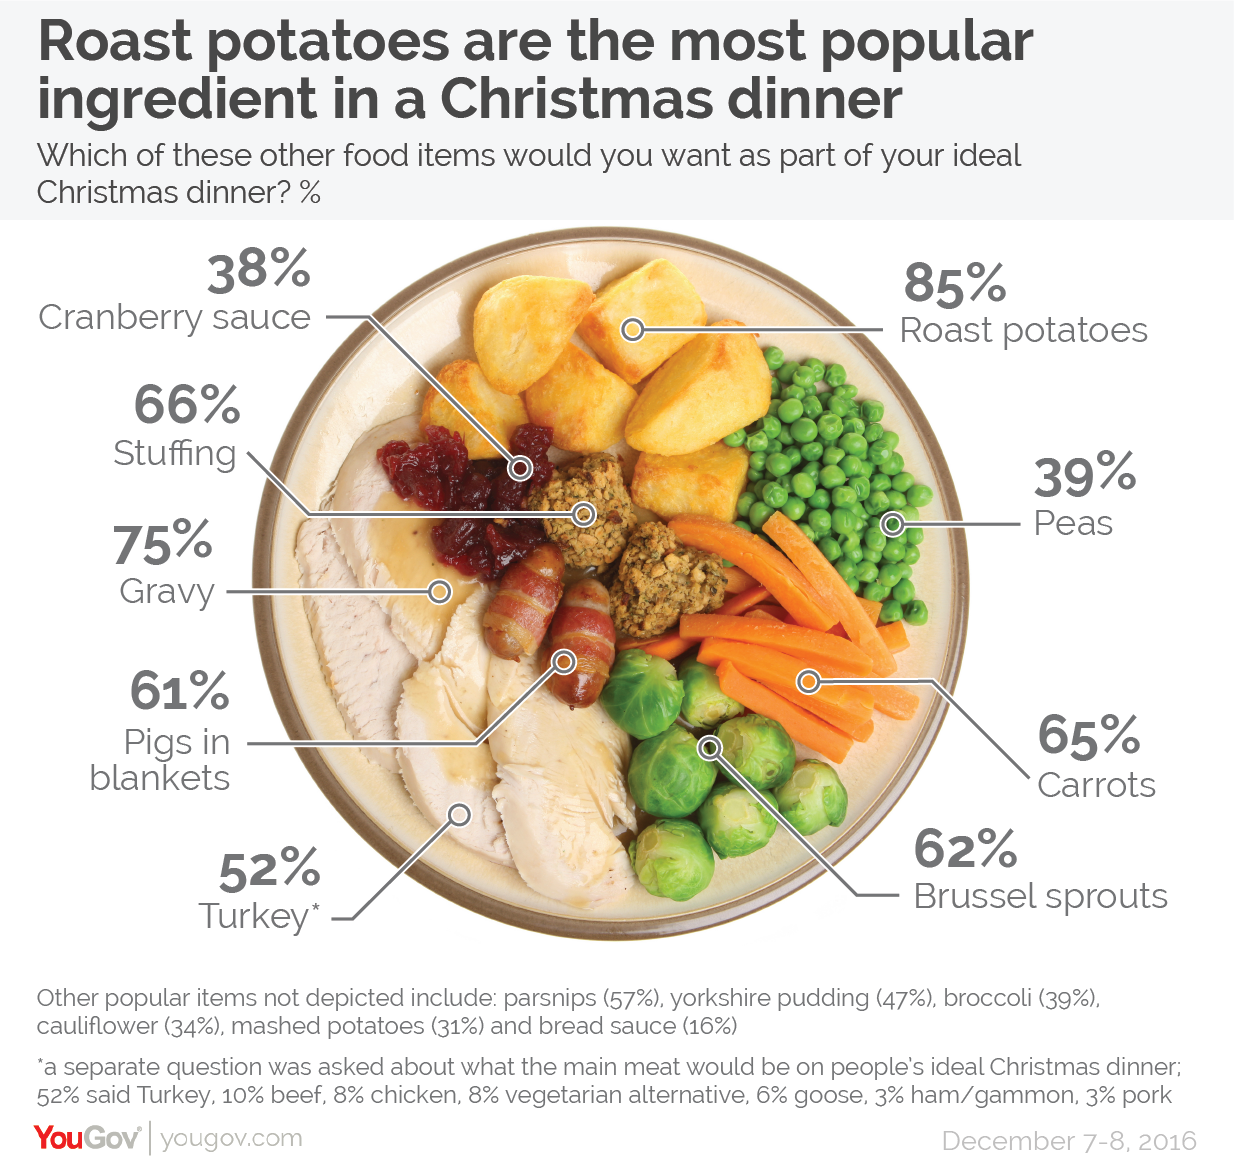 Fully 85% of people say that their ideal Christmas dinner would contain roast potatoes.  sc 1 st  YouGov & YouGov | Only half want turkey in their ideal Christmas dinner